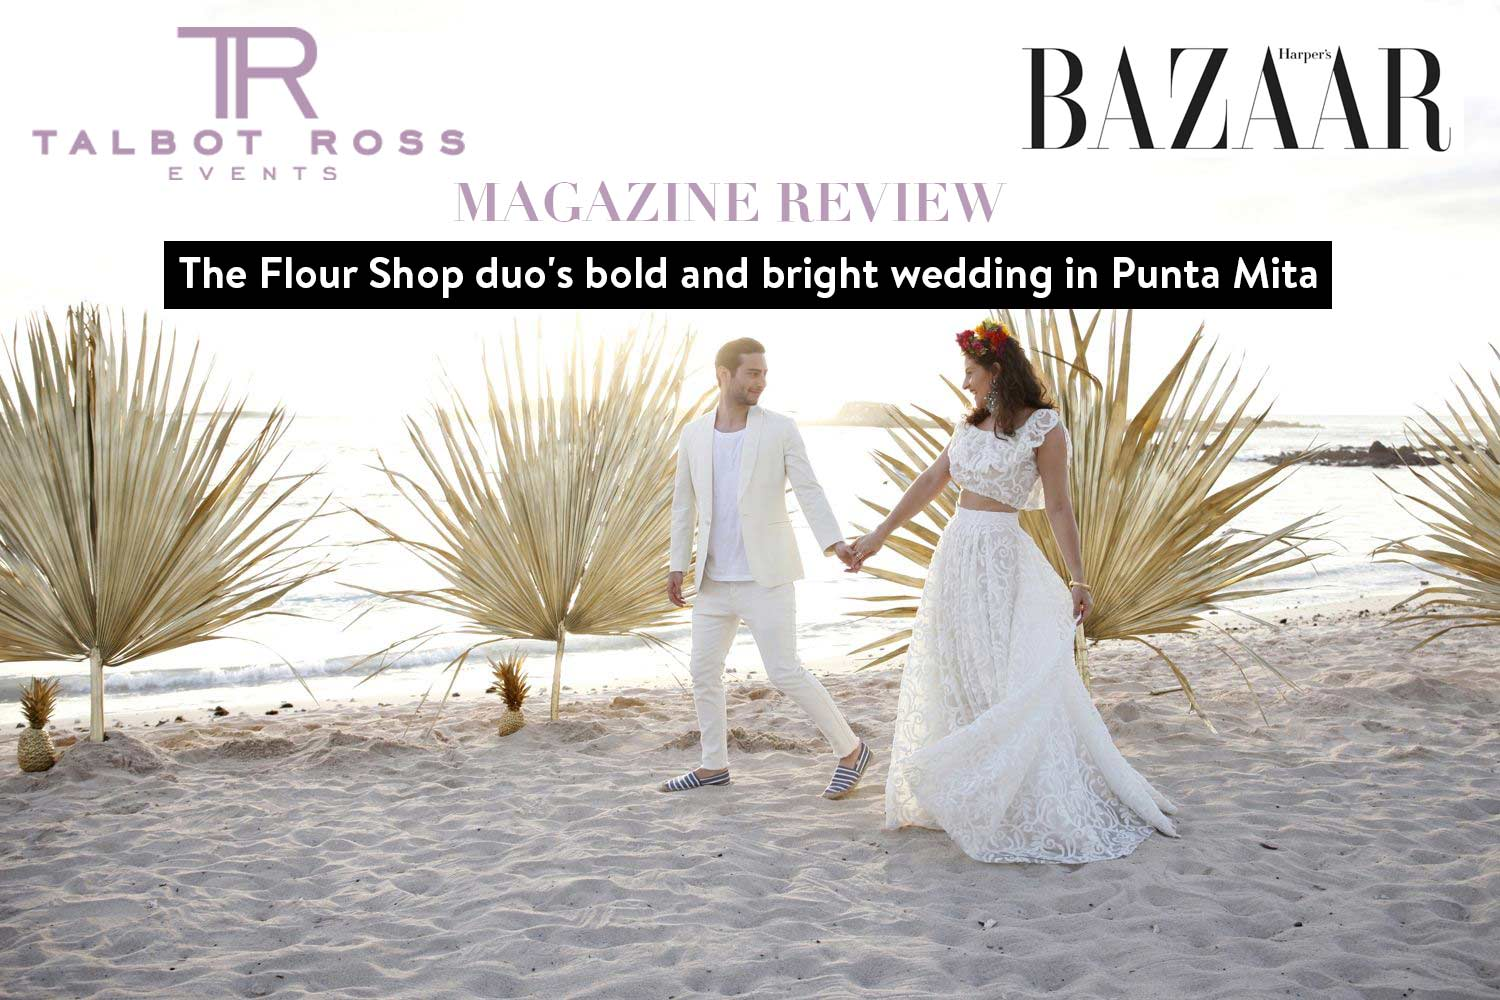 harpers-bazaar-talbot-ross-review-magazine